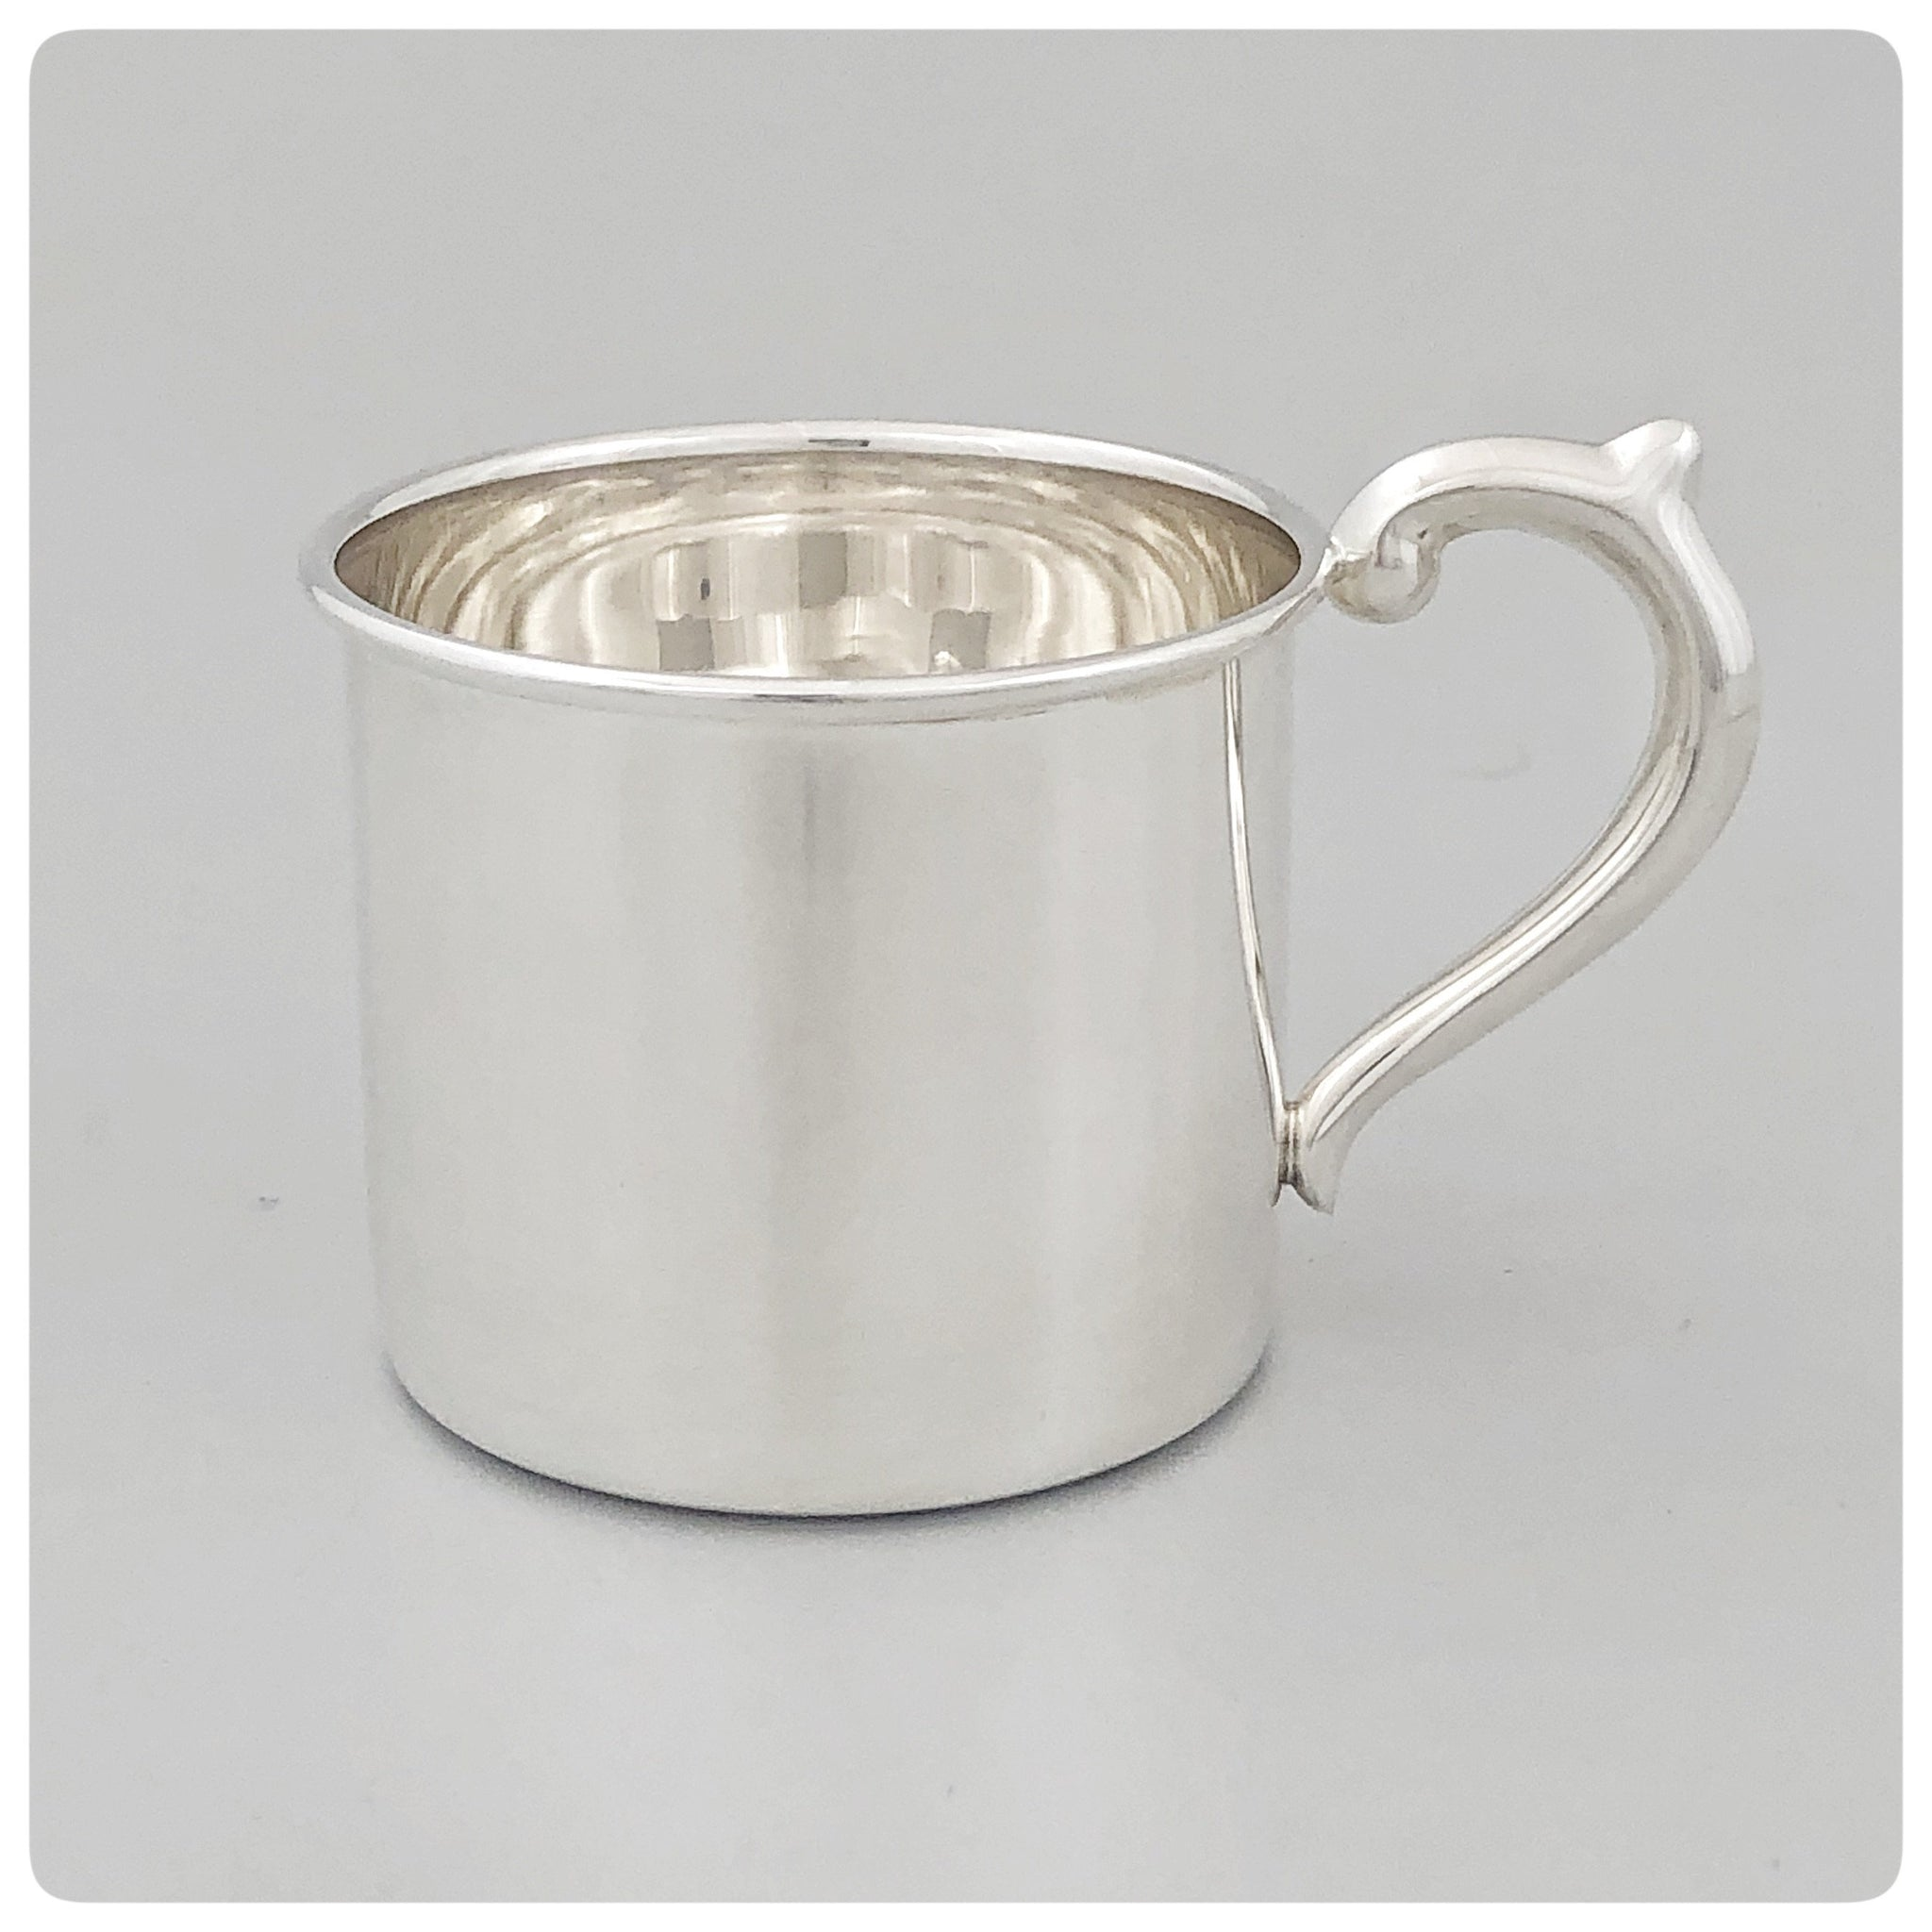 Sterling Silver Baby Cup with Straight Sides, The Prince Company, Pawley's Island, SC, New - The Silver Vault of Charleston